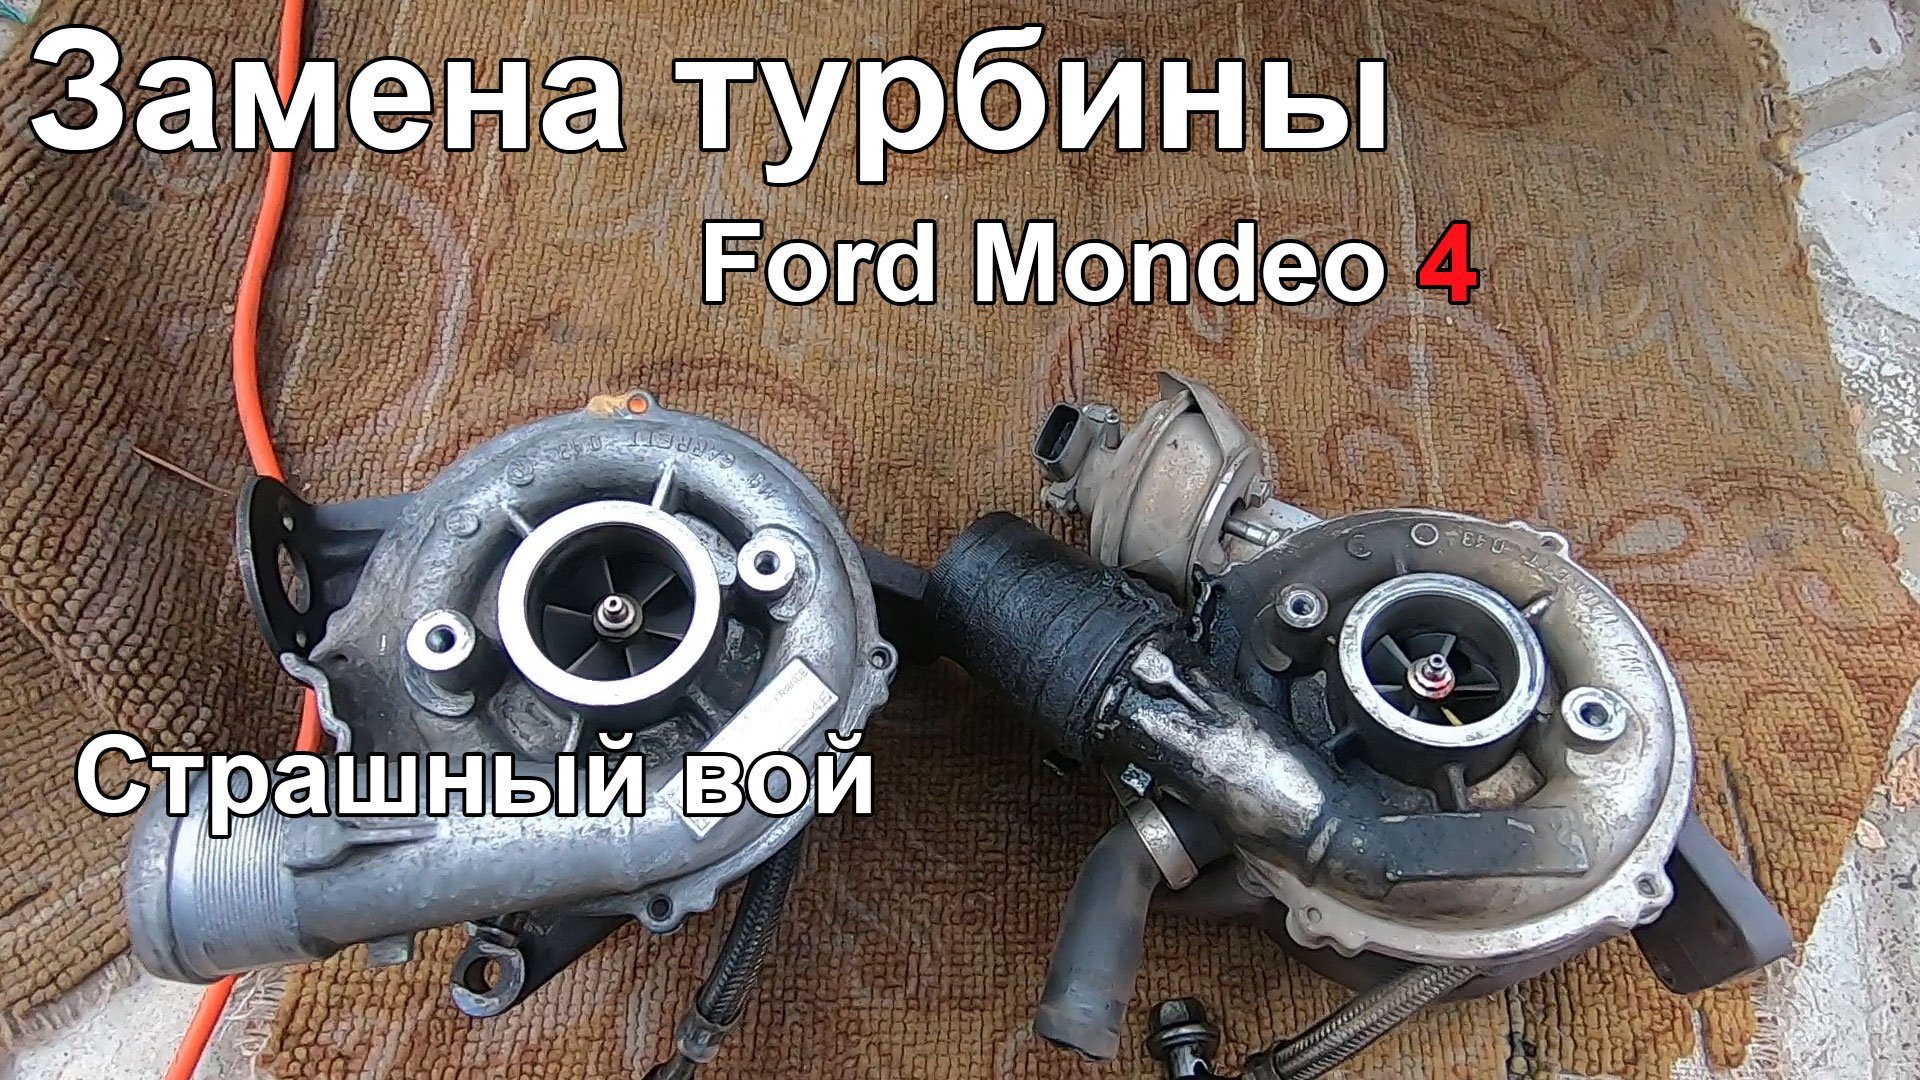 Как убить турбину за 5 минут на Ford Mndeo 4 2.0Tdci